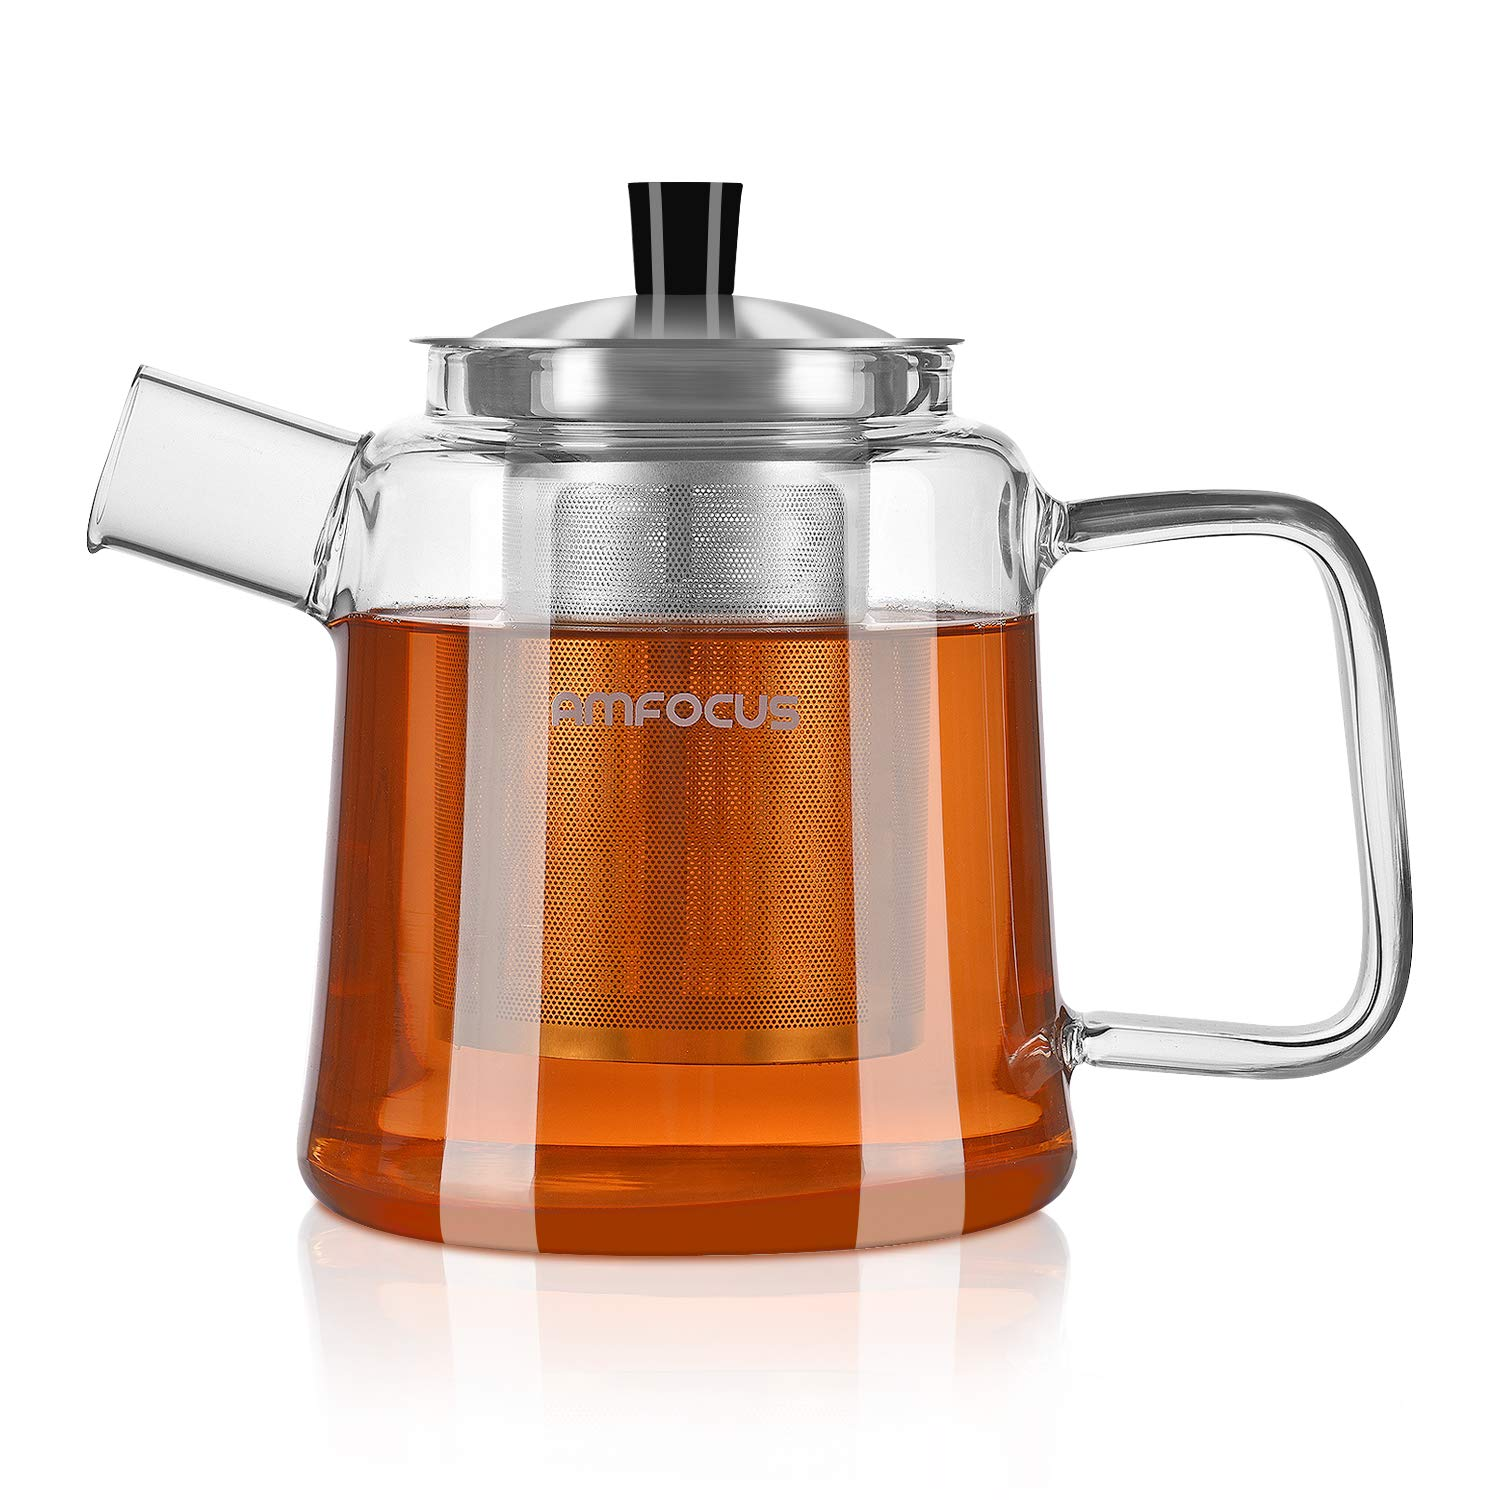 Glass Teapot with Infuser, Blooming and Loose Leaf Tea Pot Tea Maker Stainless Steel Infuser - Stovetop Safe AMFOCUS Z-1